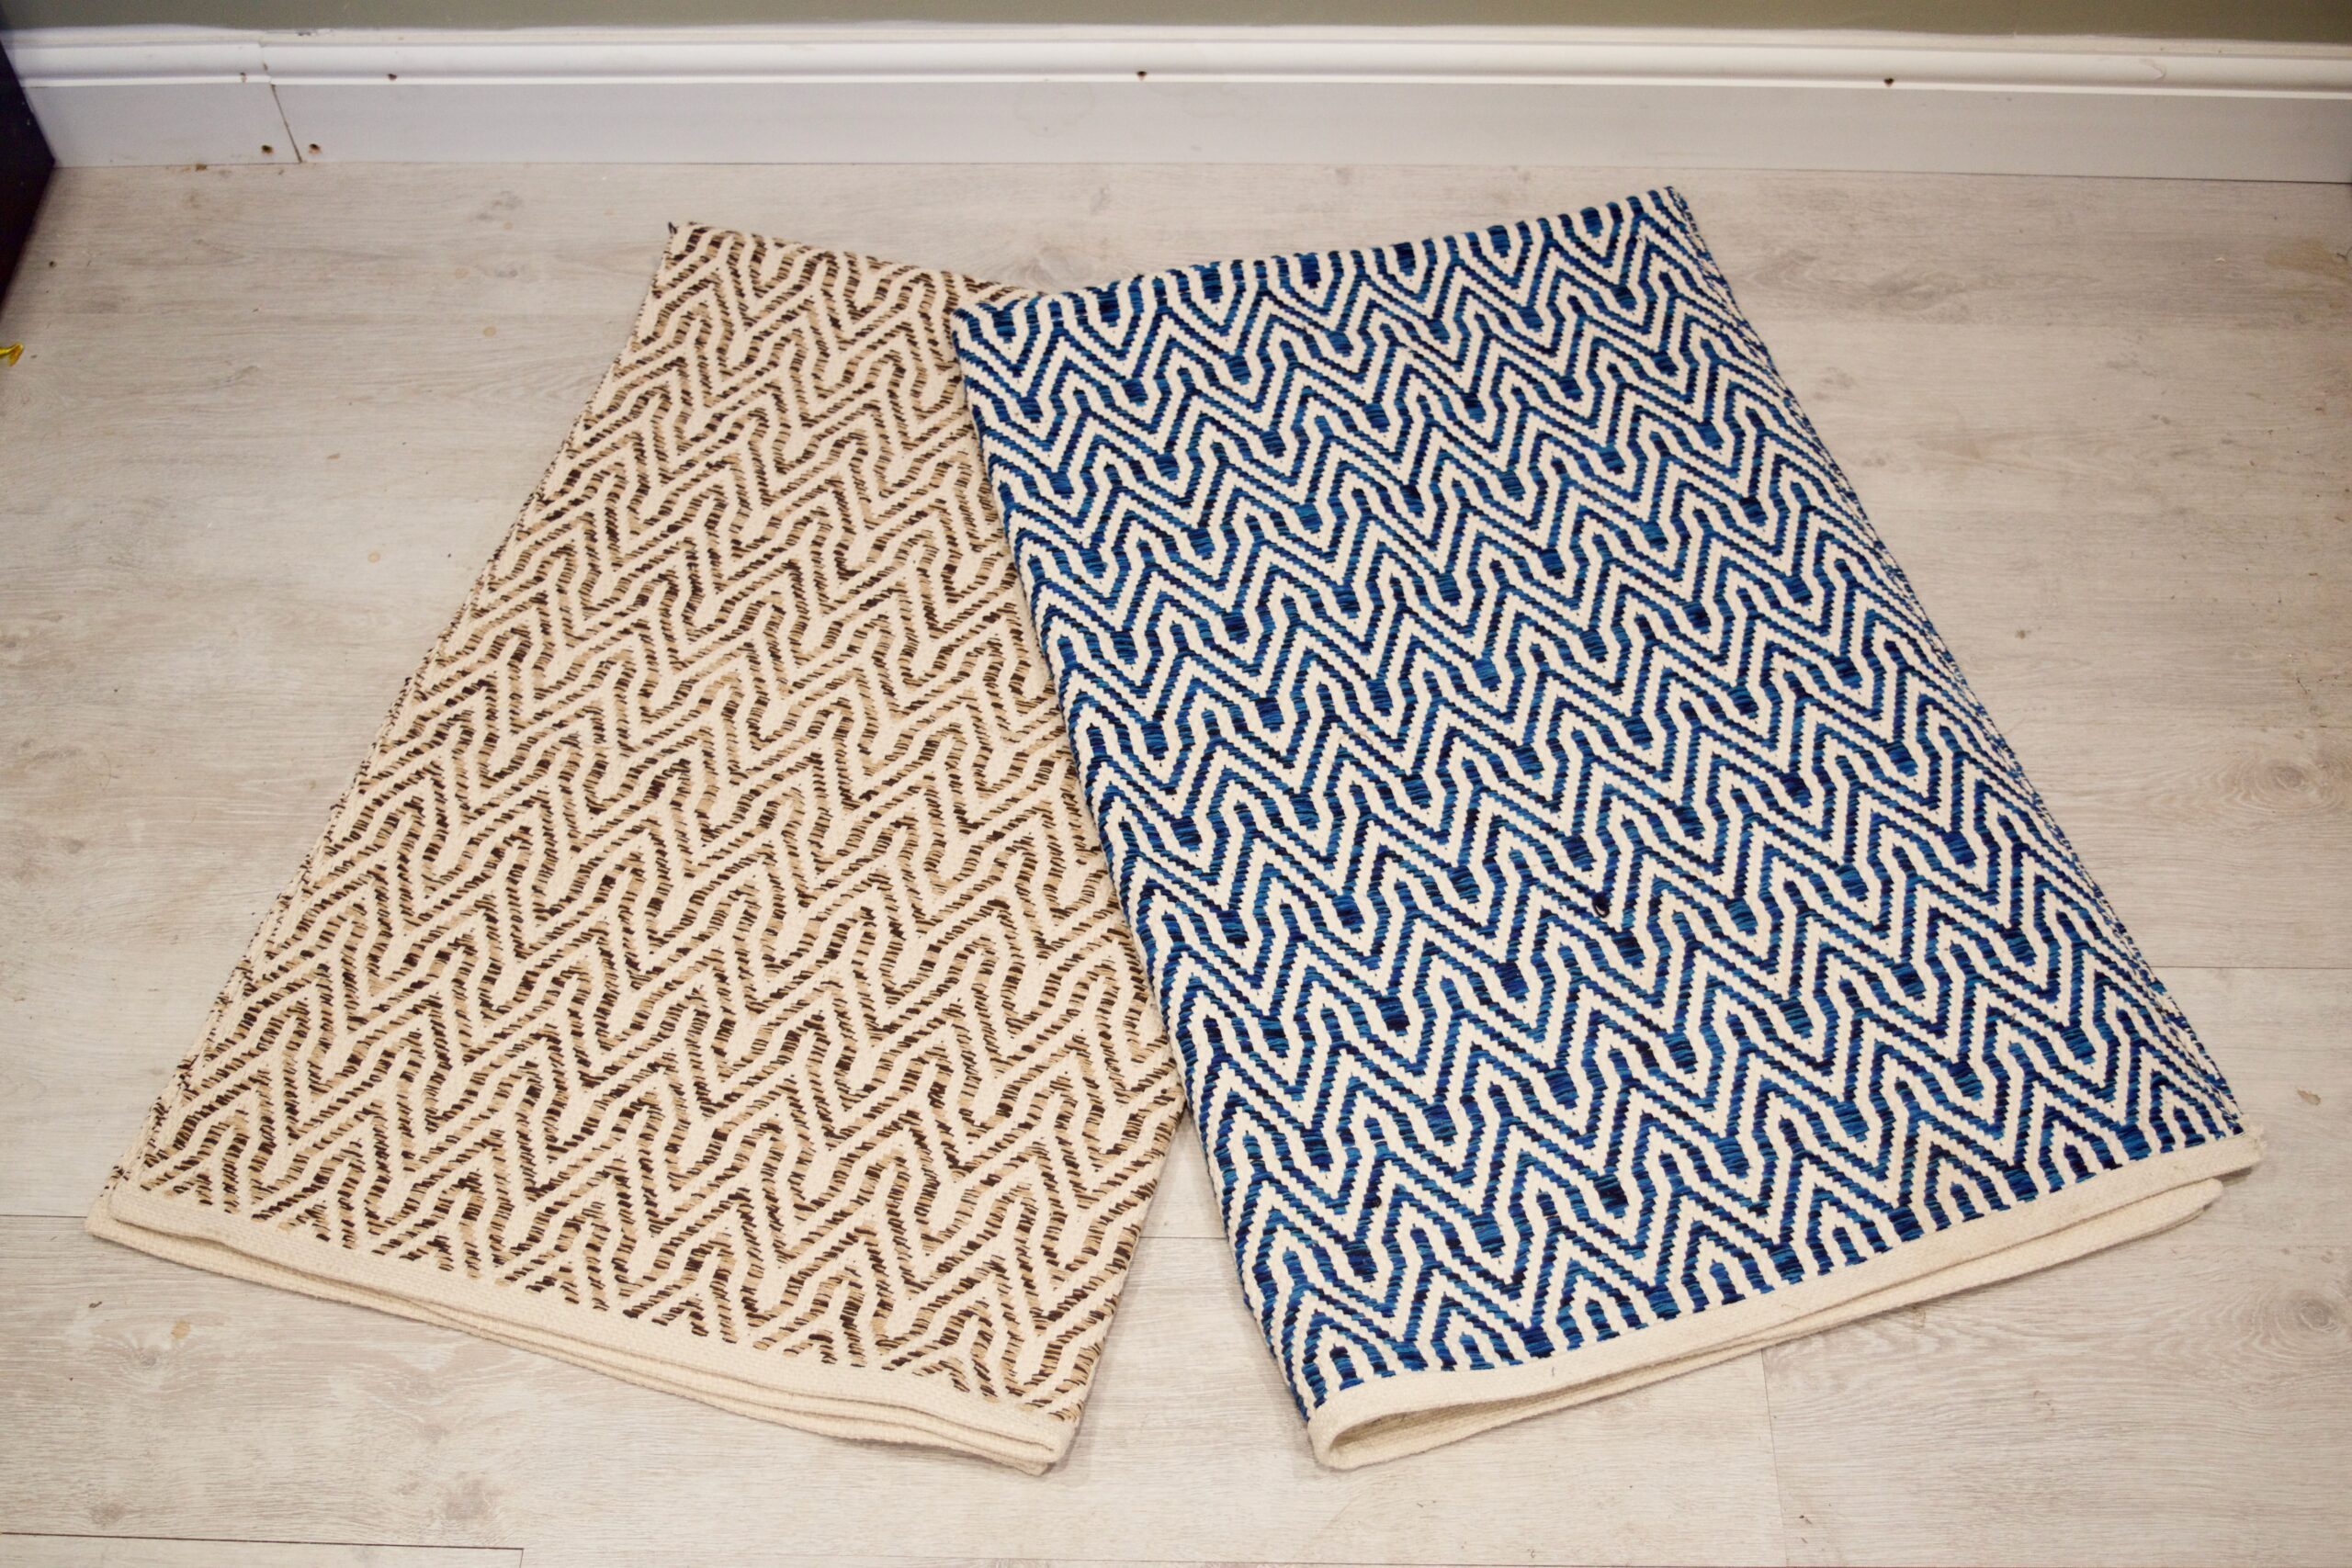 Rugs designed to fit your yurt perfectly